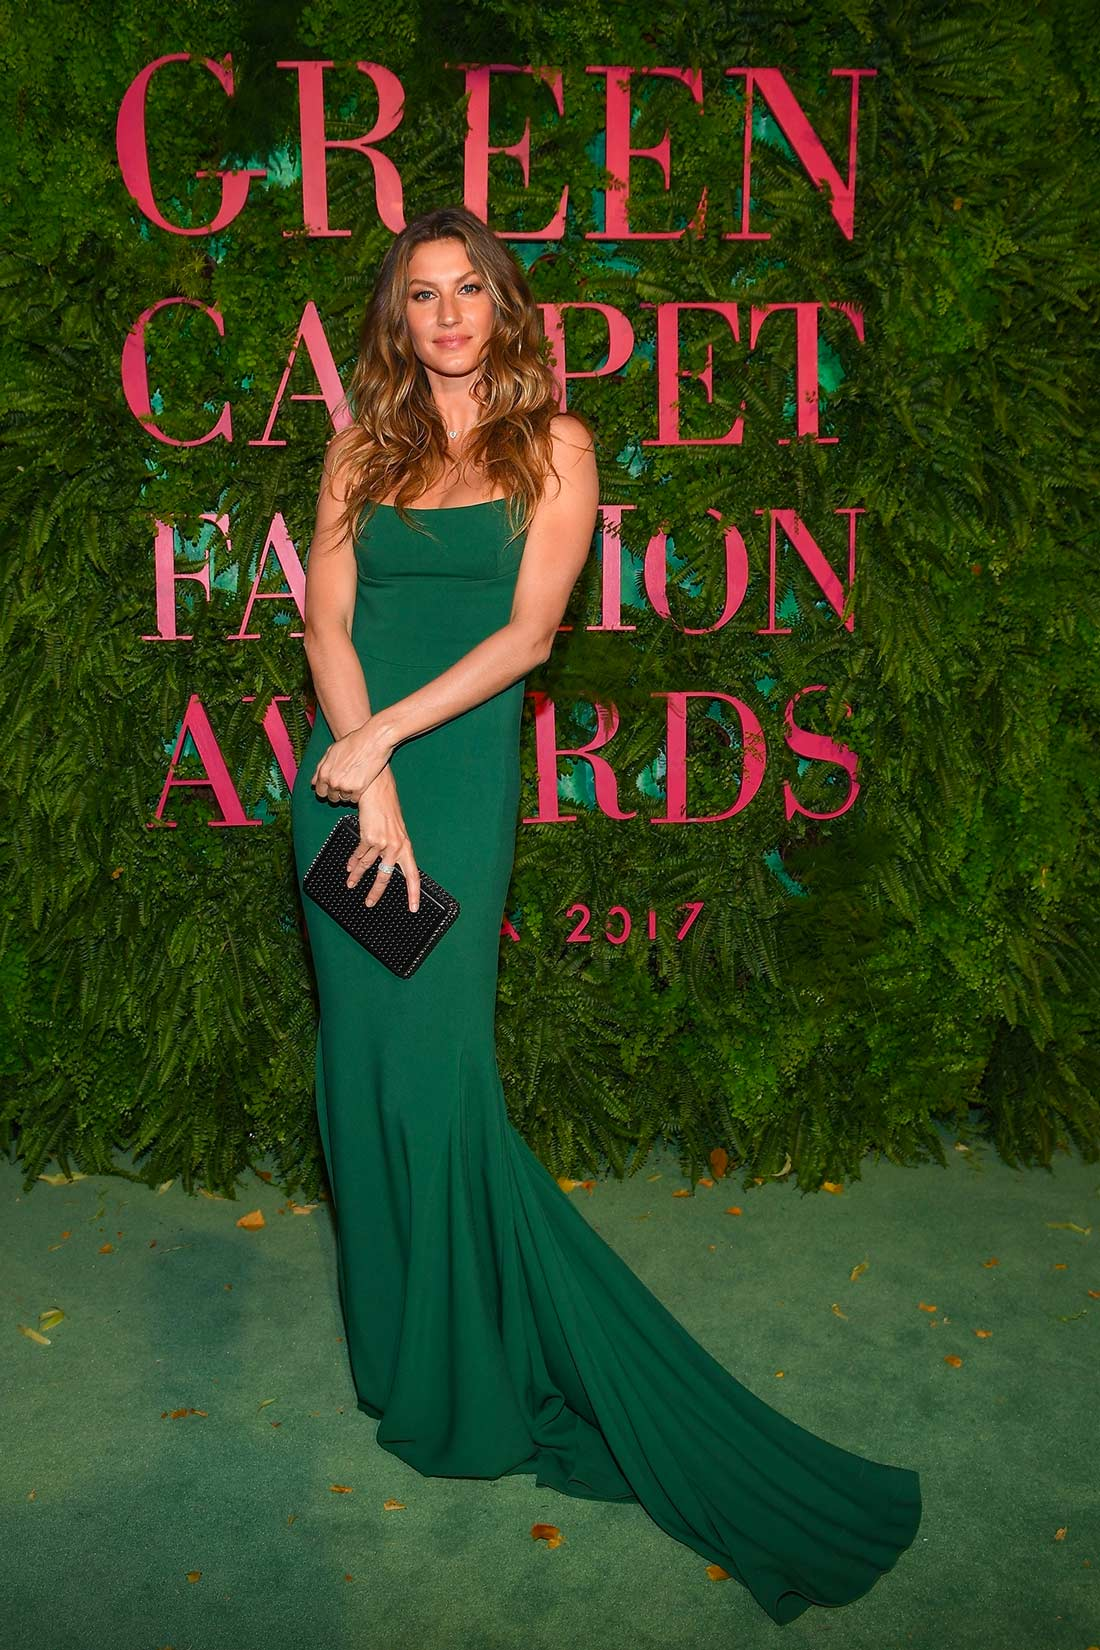 Green Carpet Fashion Awards Milano 2017 - Gisele Bundchen - Hair & Makeup Massimo Serini